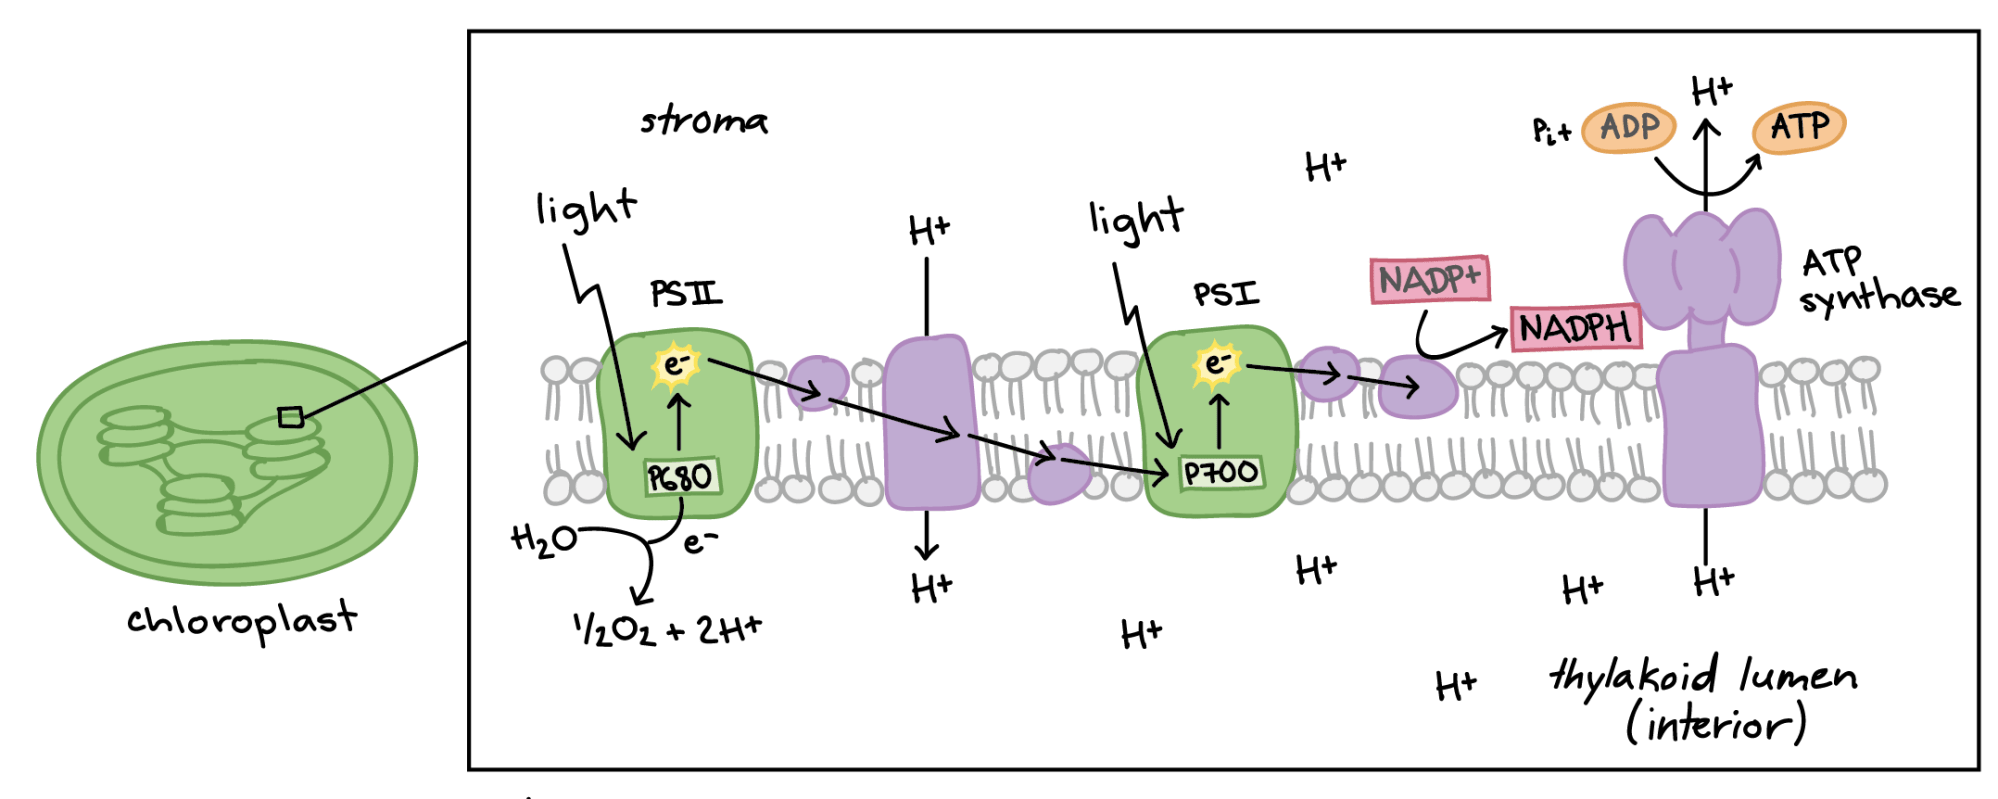 hight resolution of diagram of non cyclic photophosphorylation the photosystems and electron transport chain components are embedded